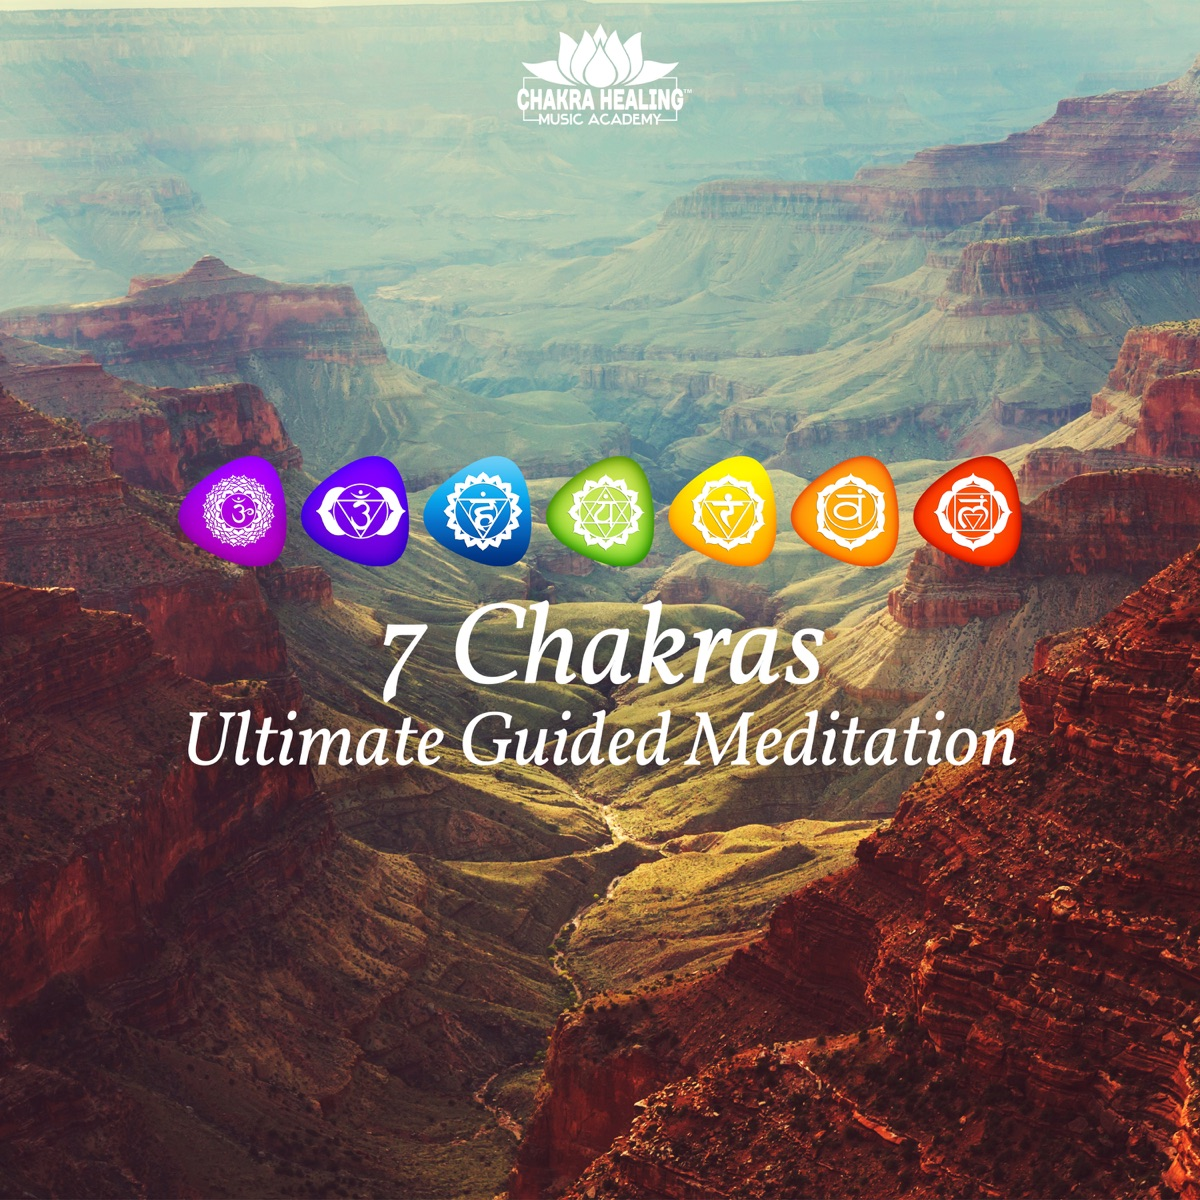 7 Chakras Ultimate Guided Meditation: Solfeggio Frequencies 576 Hz